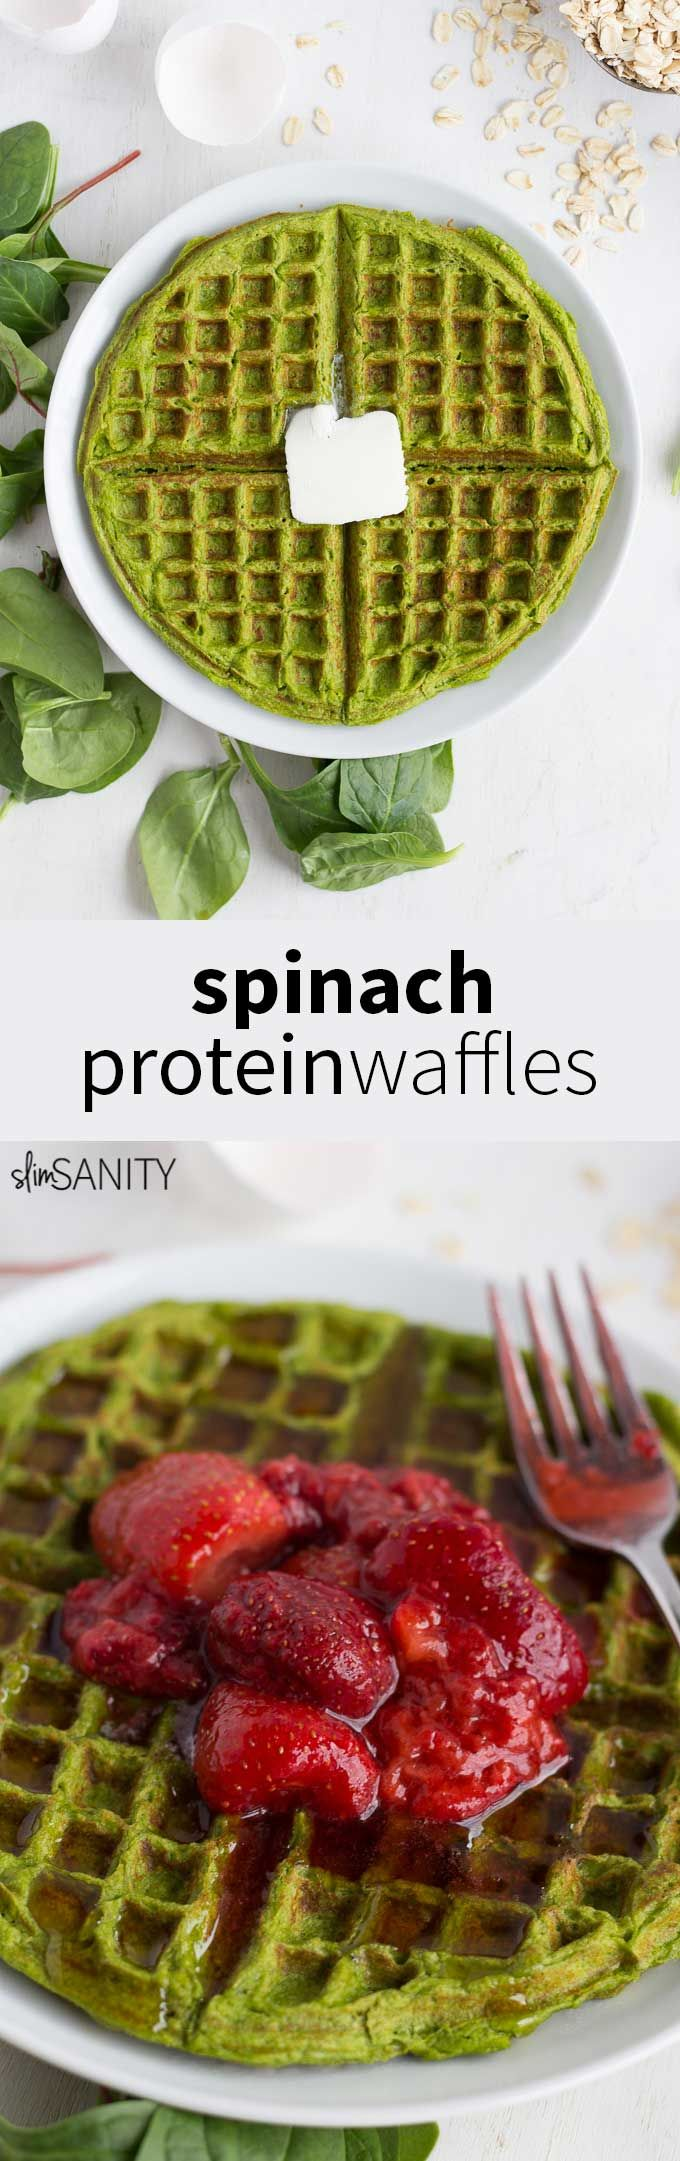 Spinach protein waffles are a delicious option for a healthy breakfast or lunch, and they can be made in 5 minutes! | slimsanity.com